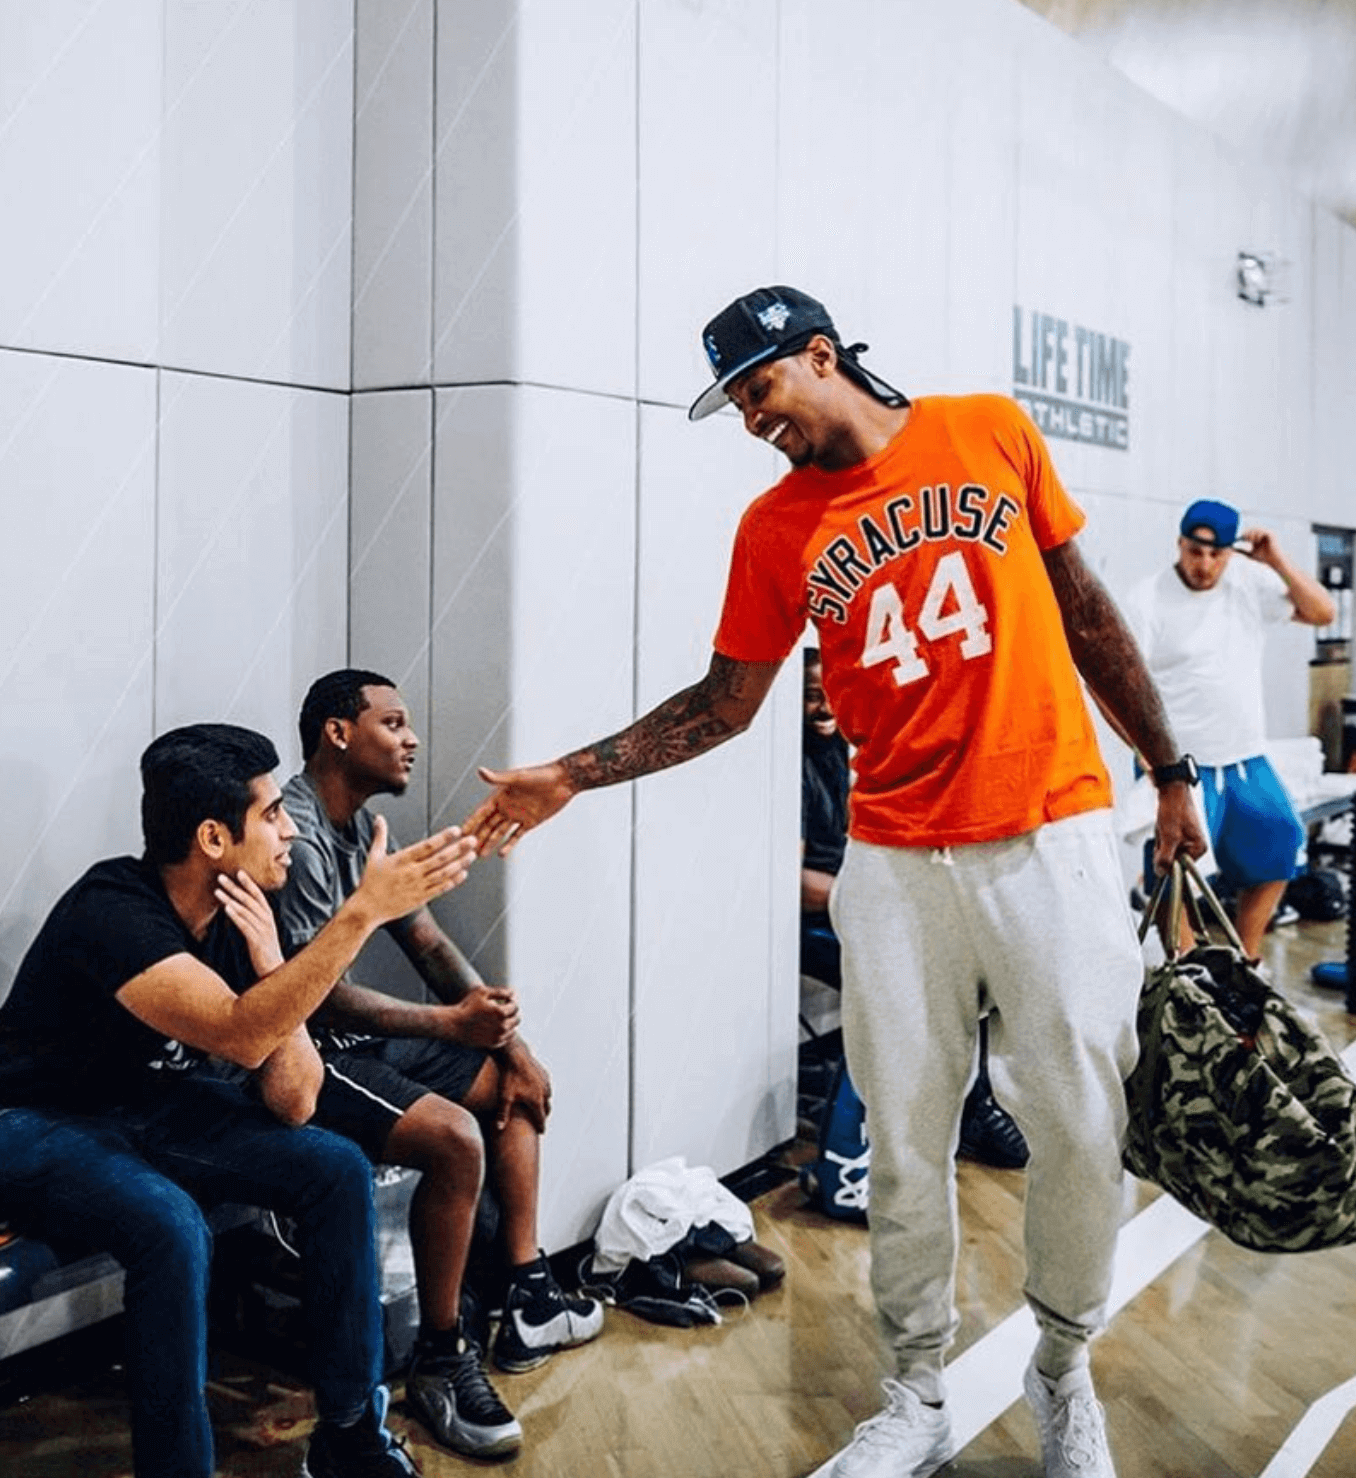 Carmelo Anthony in the Nike Air Max 98